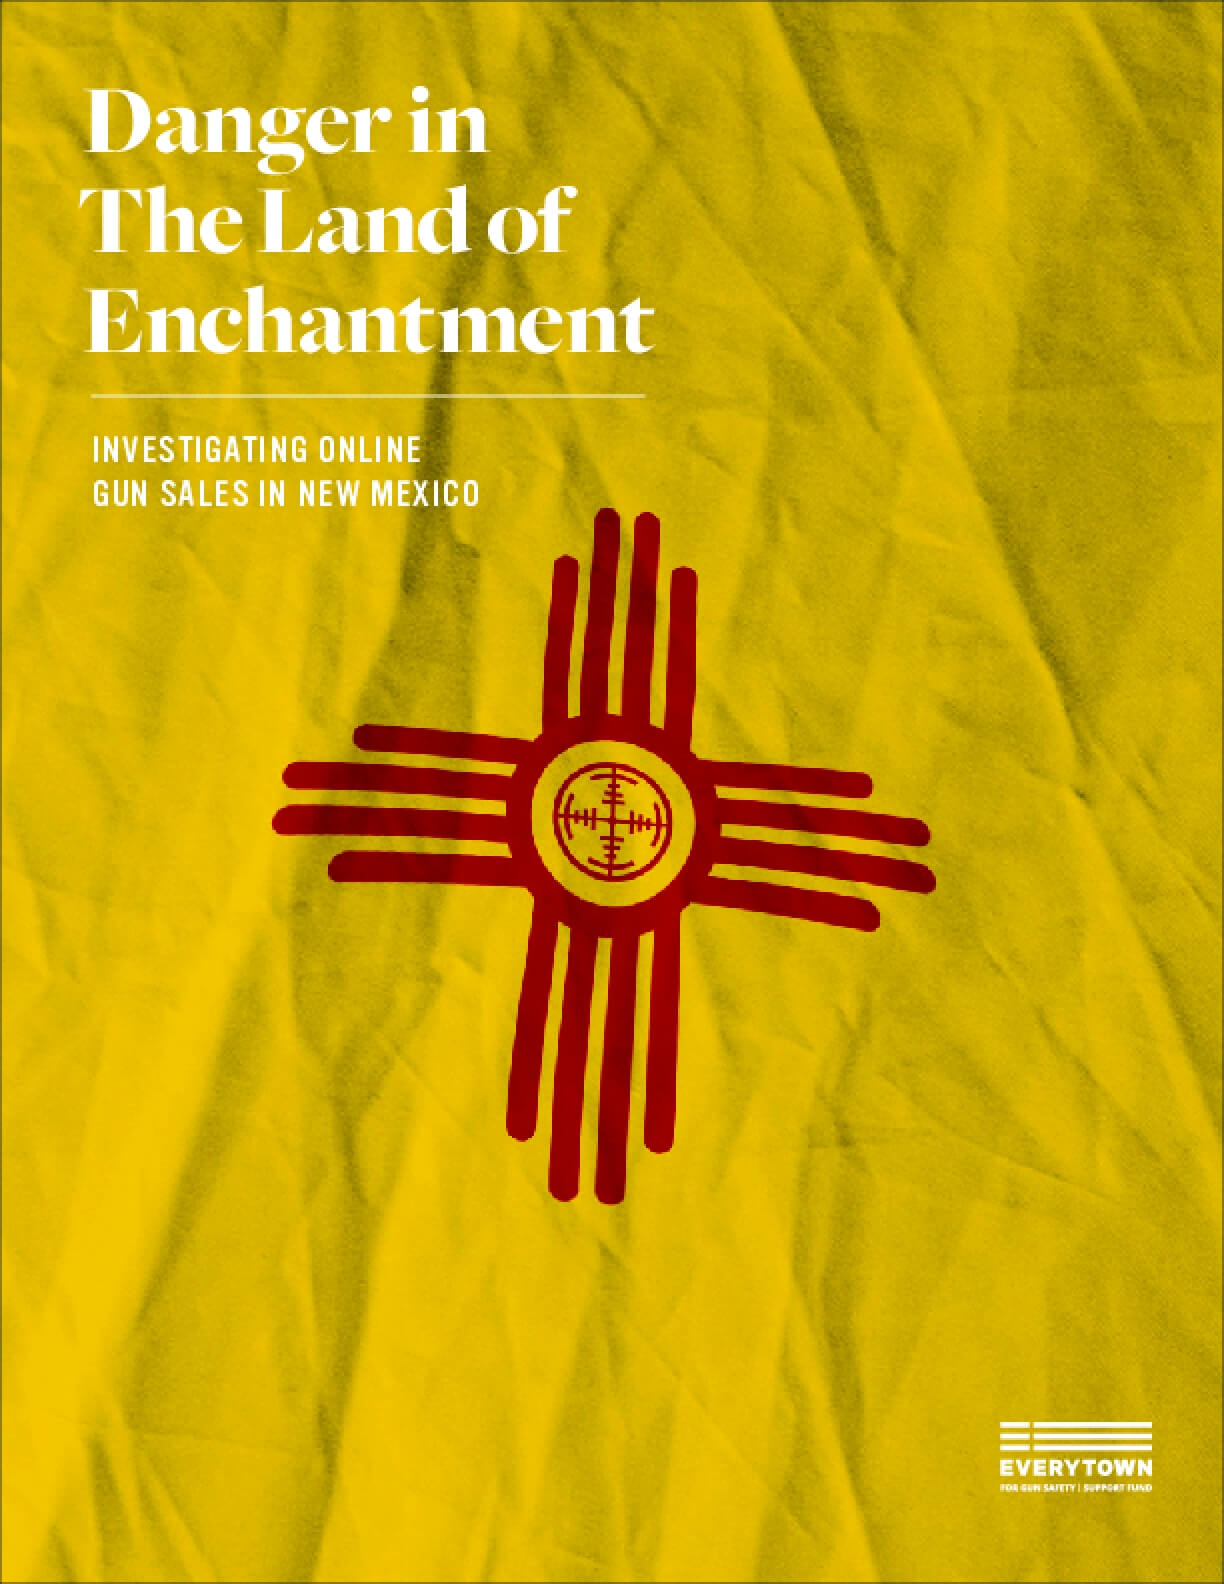 Danger in the Land of Enchantment: Investigating Online Gun Sales in New Mexico